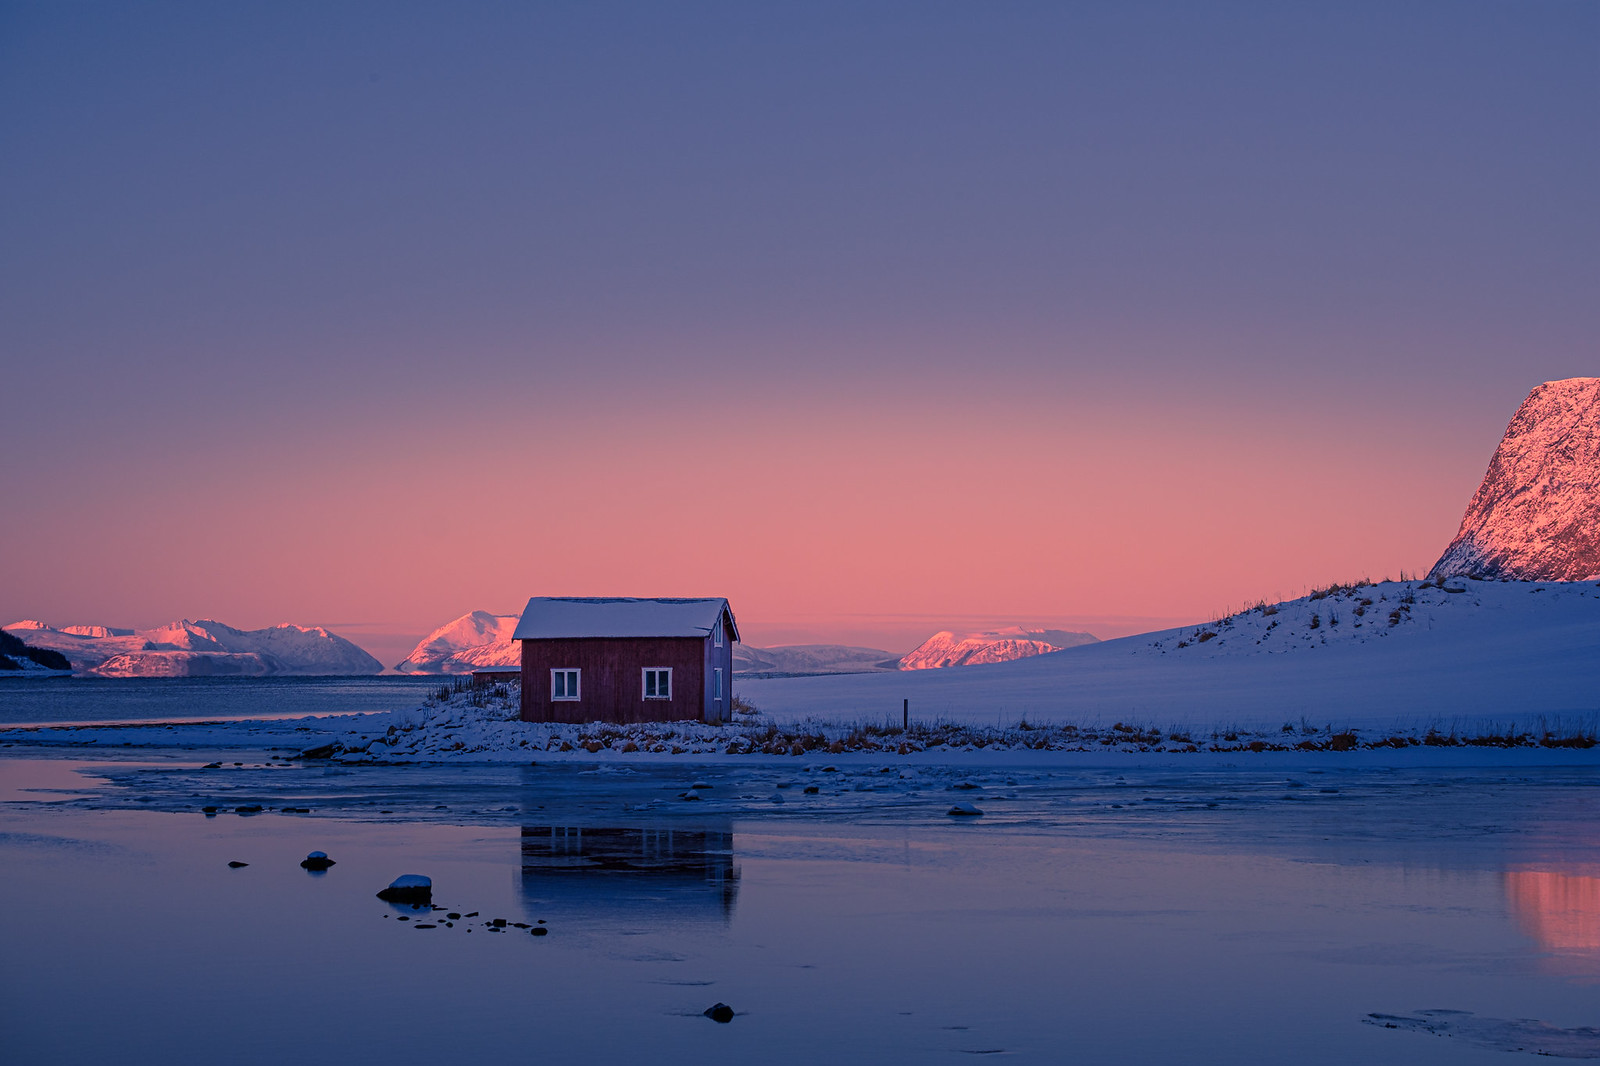 The small house in Kasfjord.